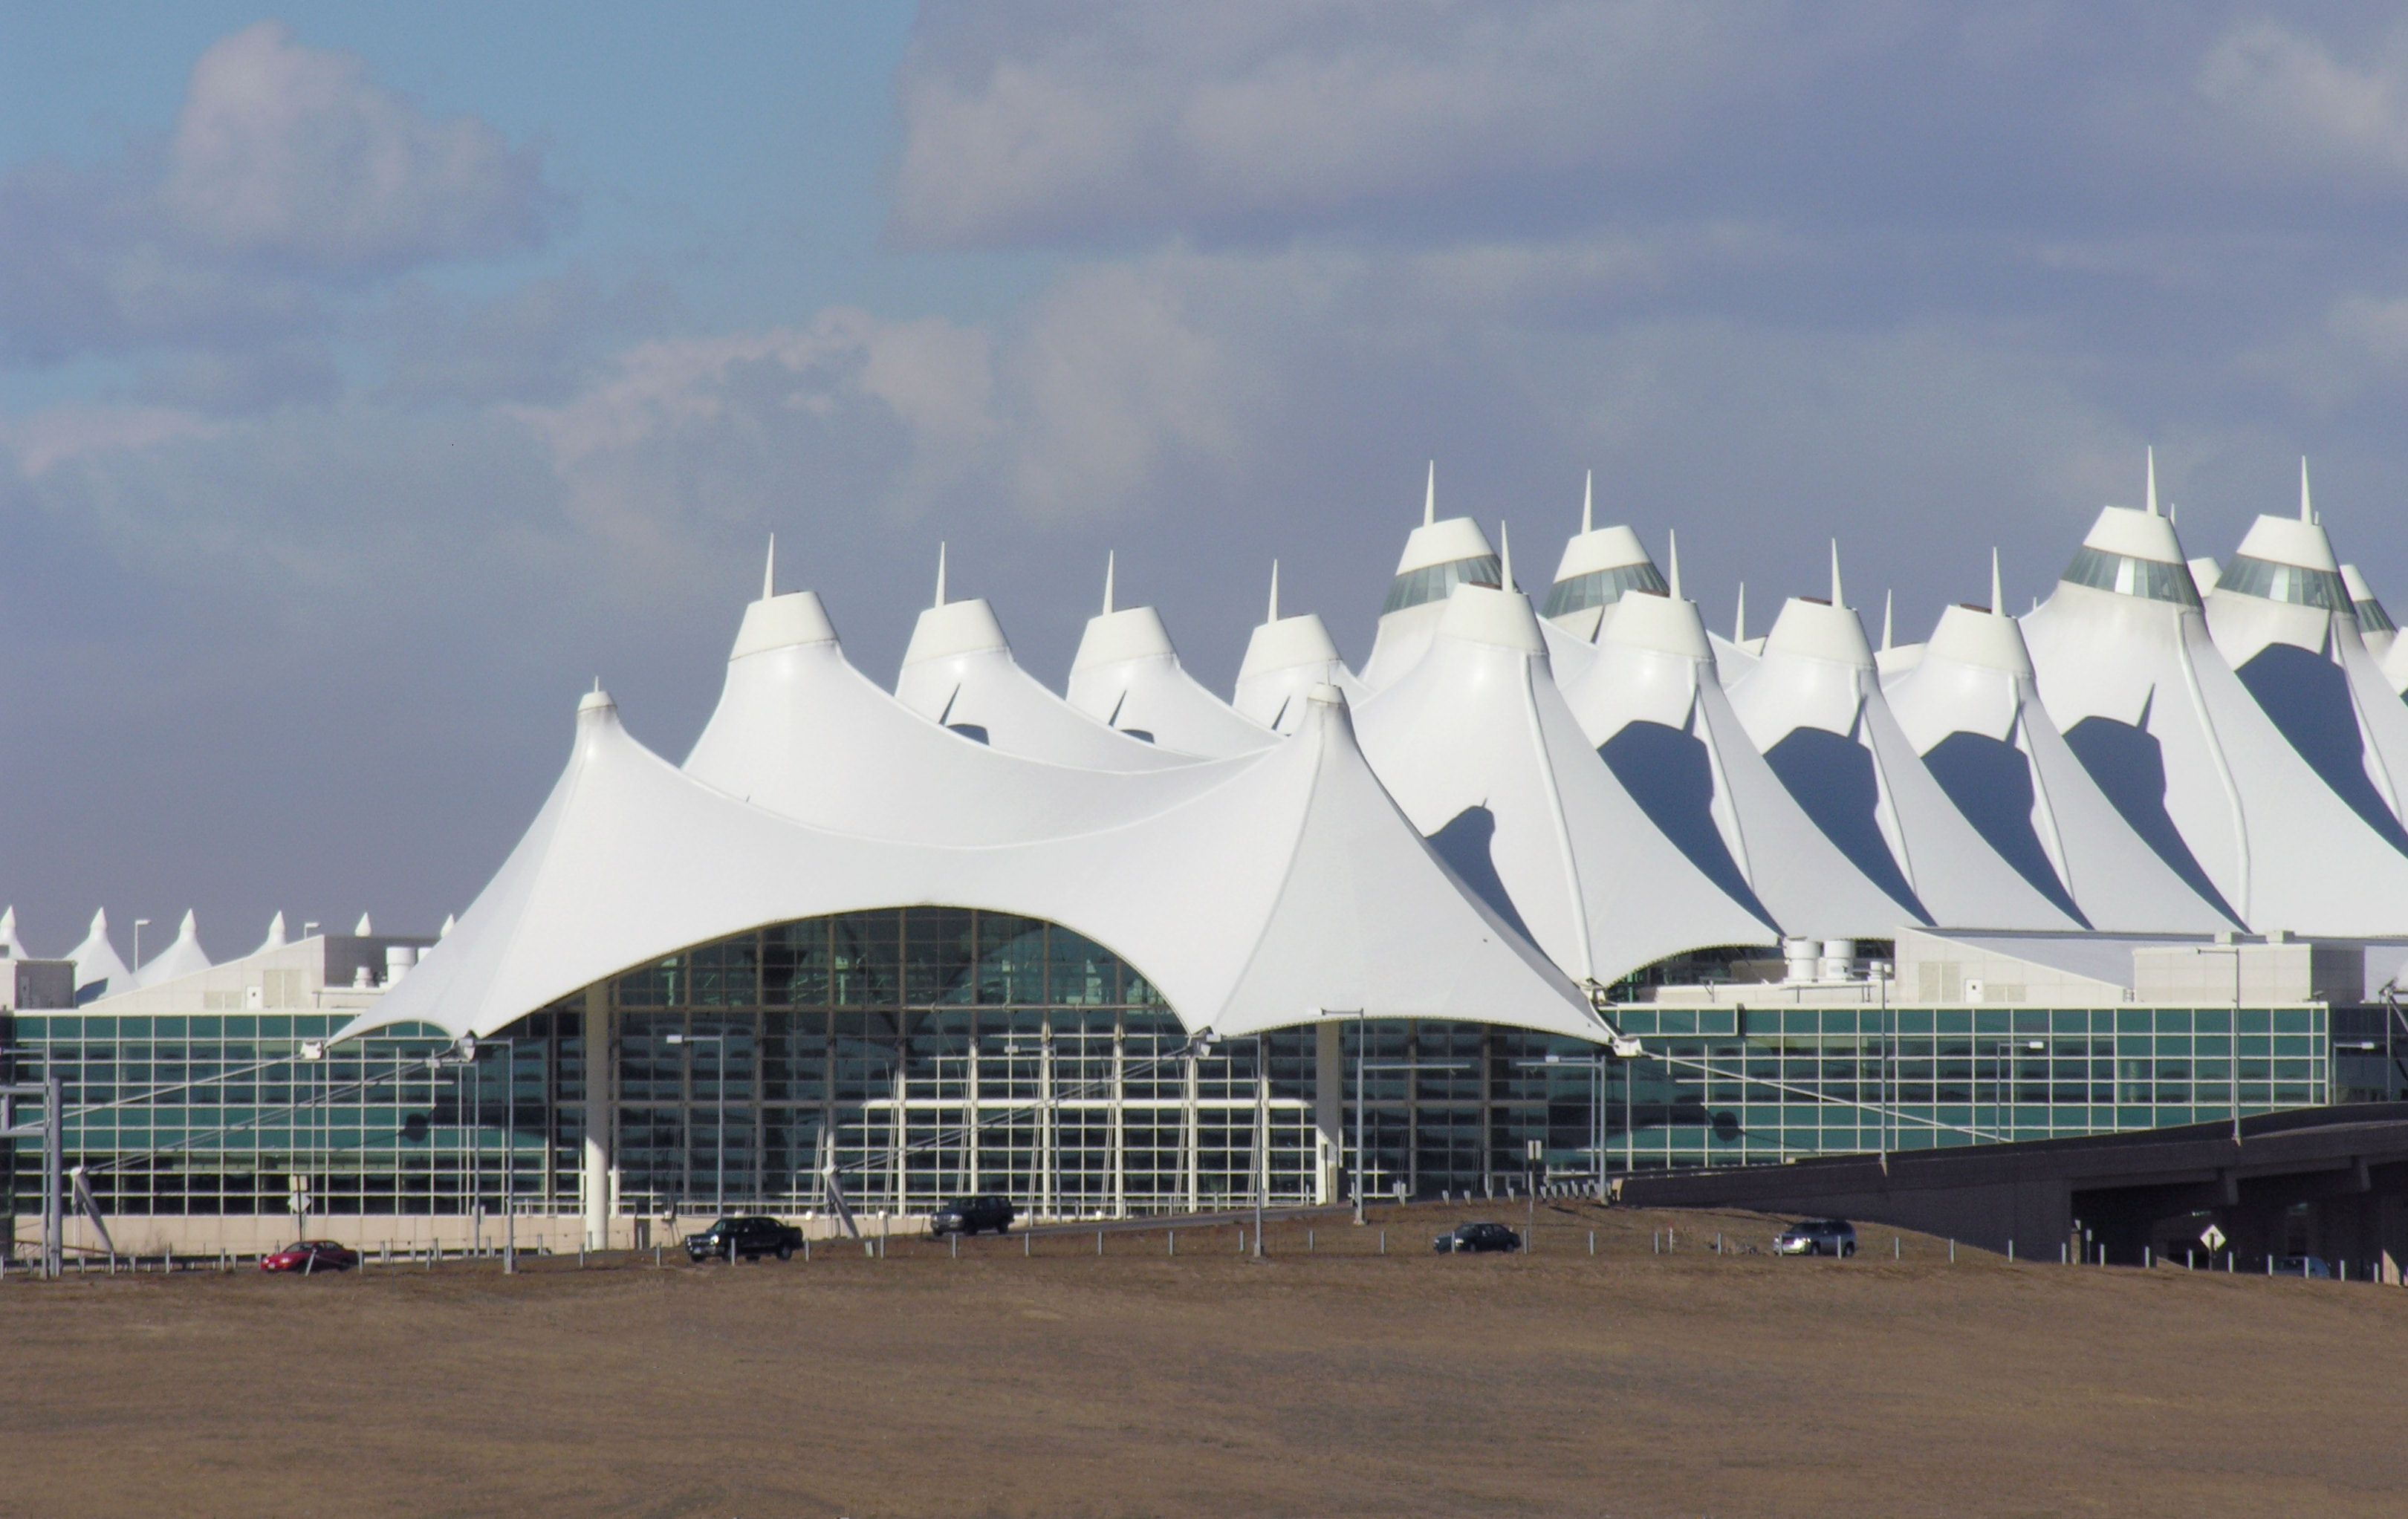 denver international airport, denver airport conspiracy, denver airport conspiracy theories